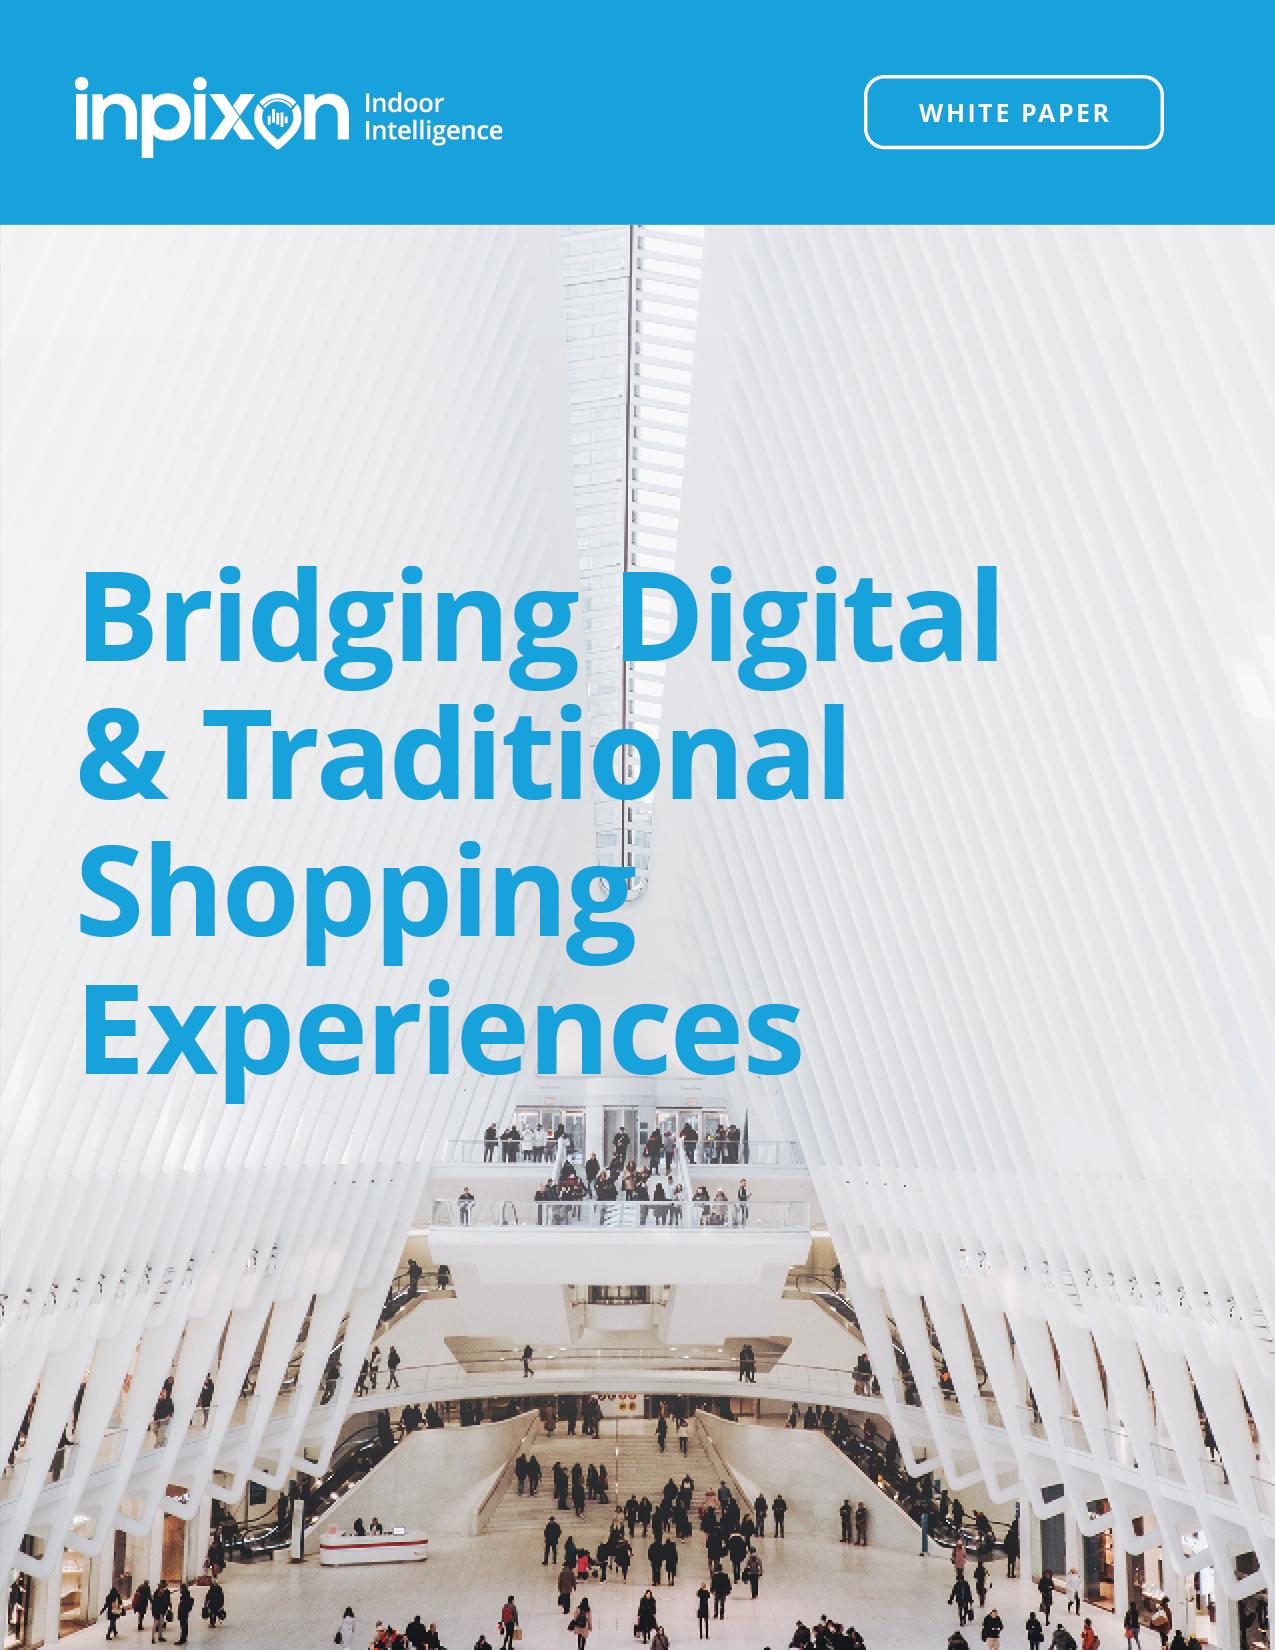 Inpixon-WhitePaper-BridgingDigitalandTraditionalExperiences